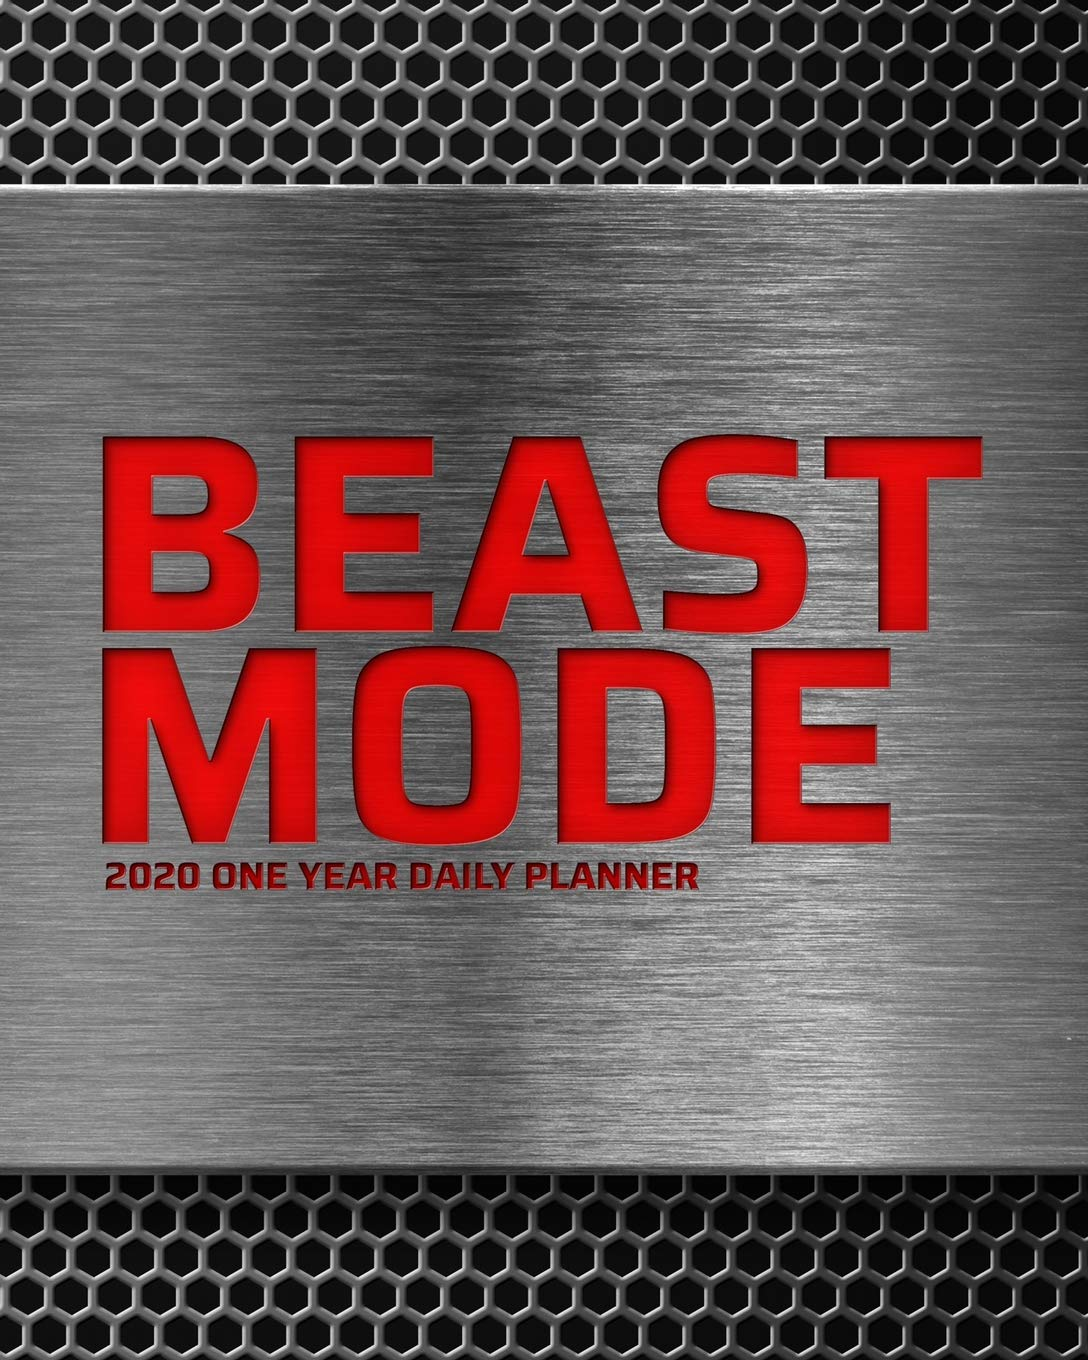 BEAST MODE - 2020 One Year Daily Planner: Powerful Red Steel ...